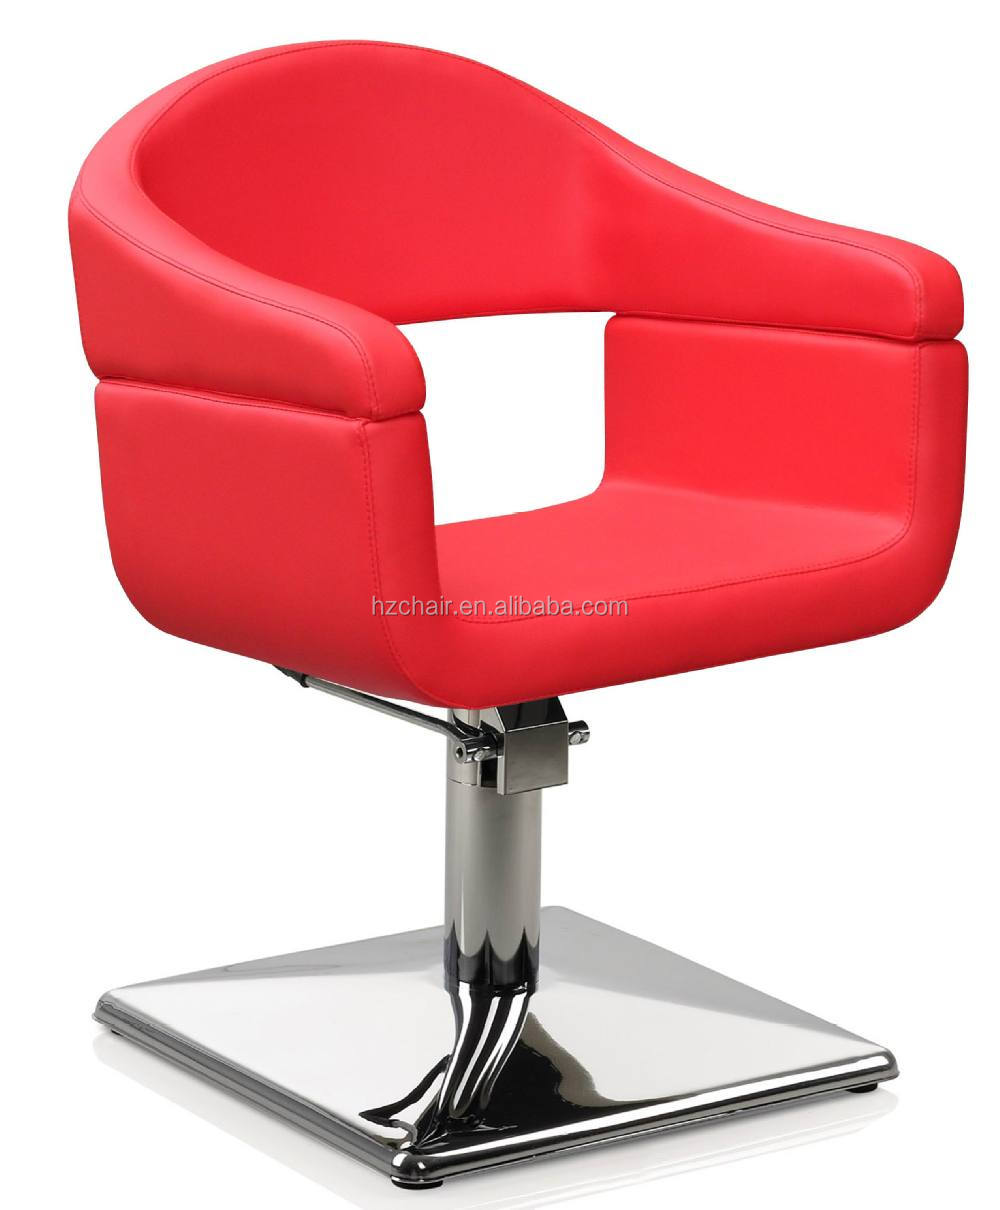 2015 european design popular lady styling chairs mobile for Salon equipment for sale cheap